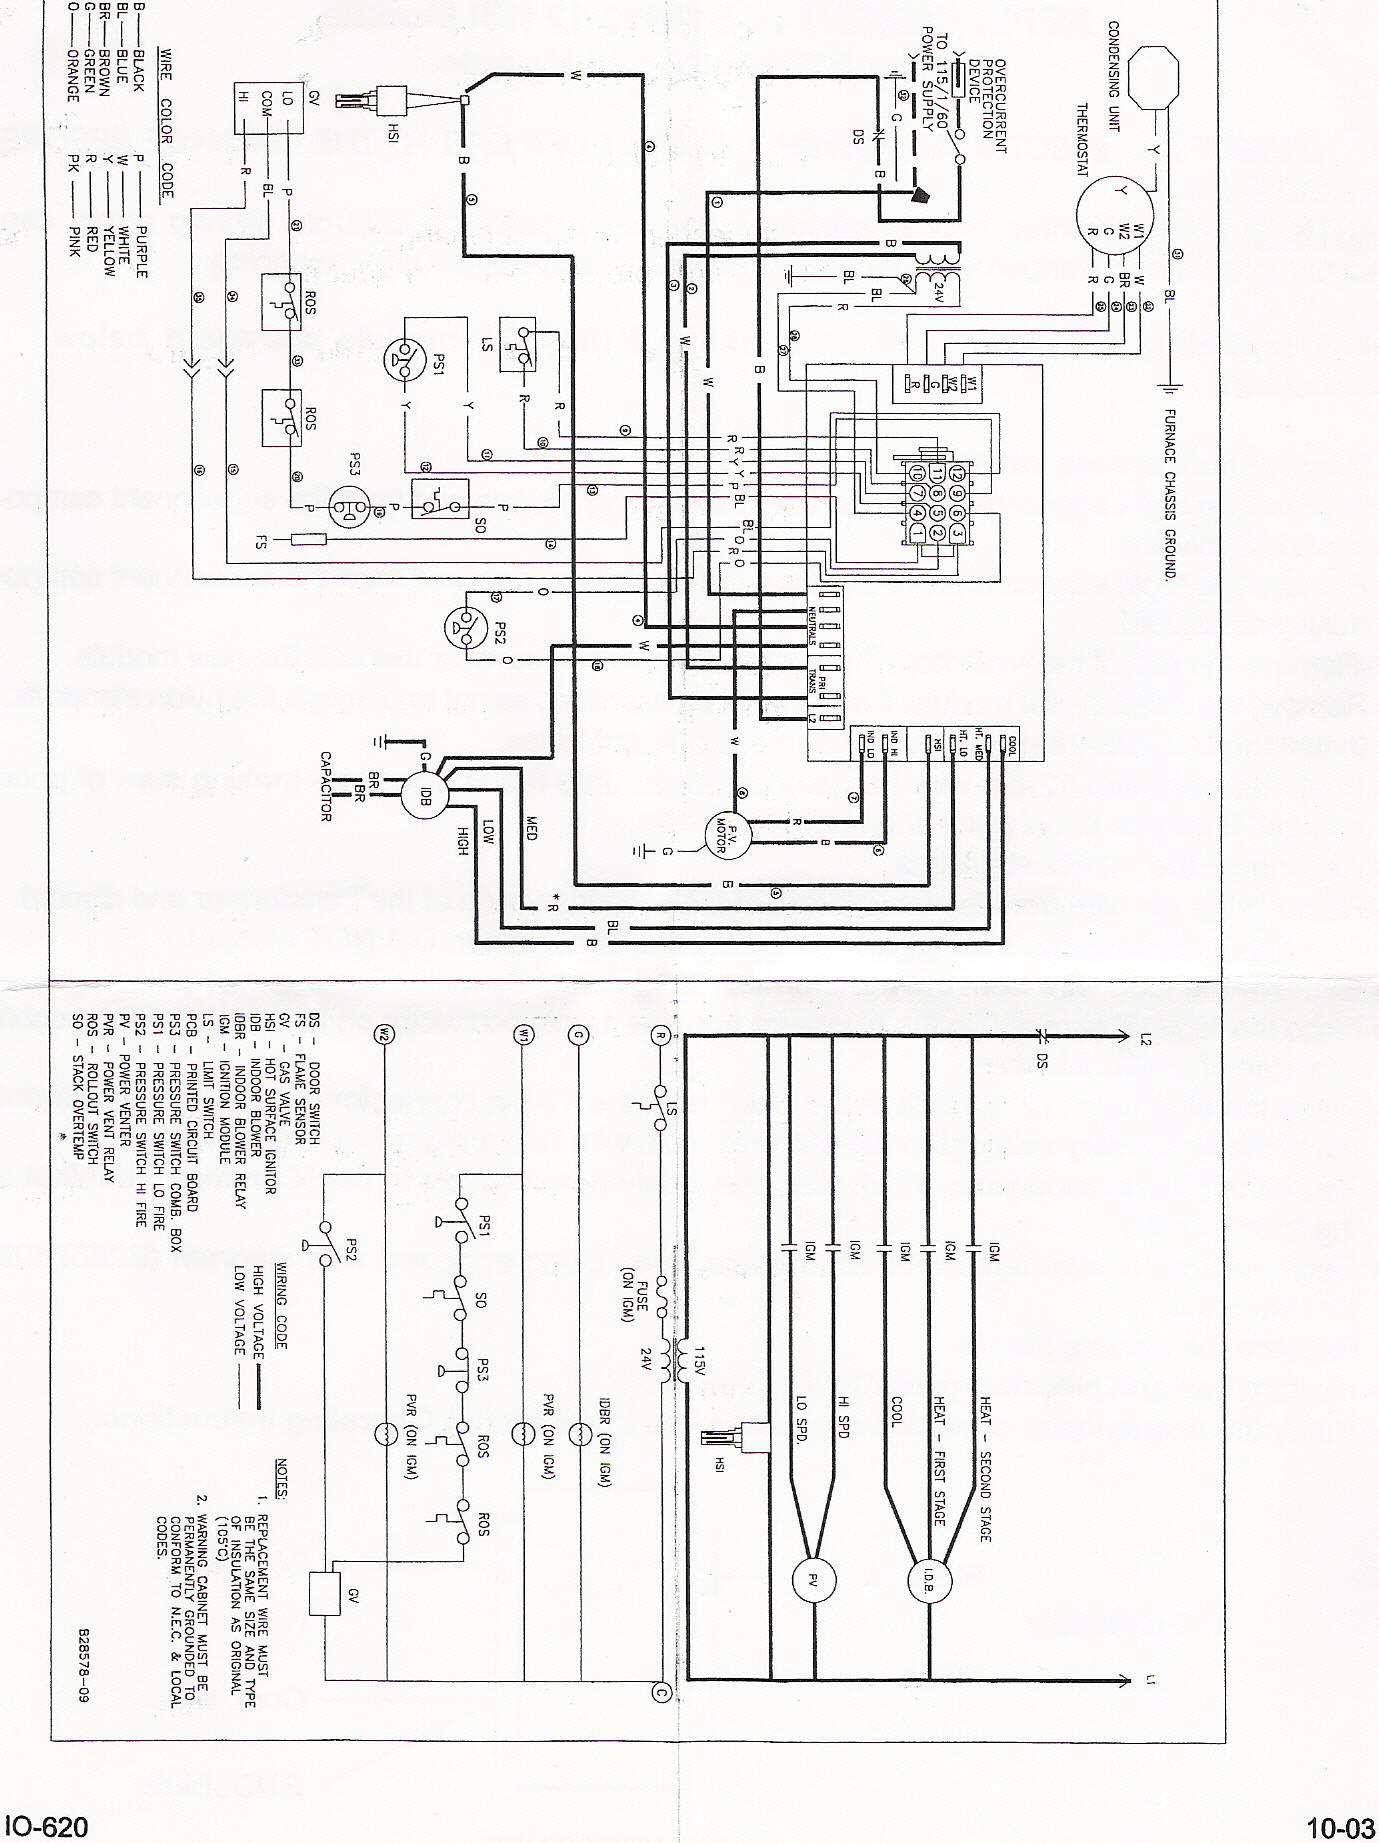 Trane Hvac System Wiring Diagram - Wiring Diagram Explained - Trane Voyager Wiring Diagram